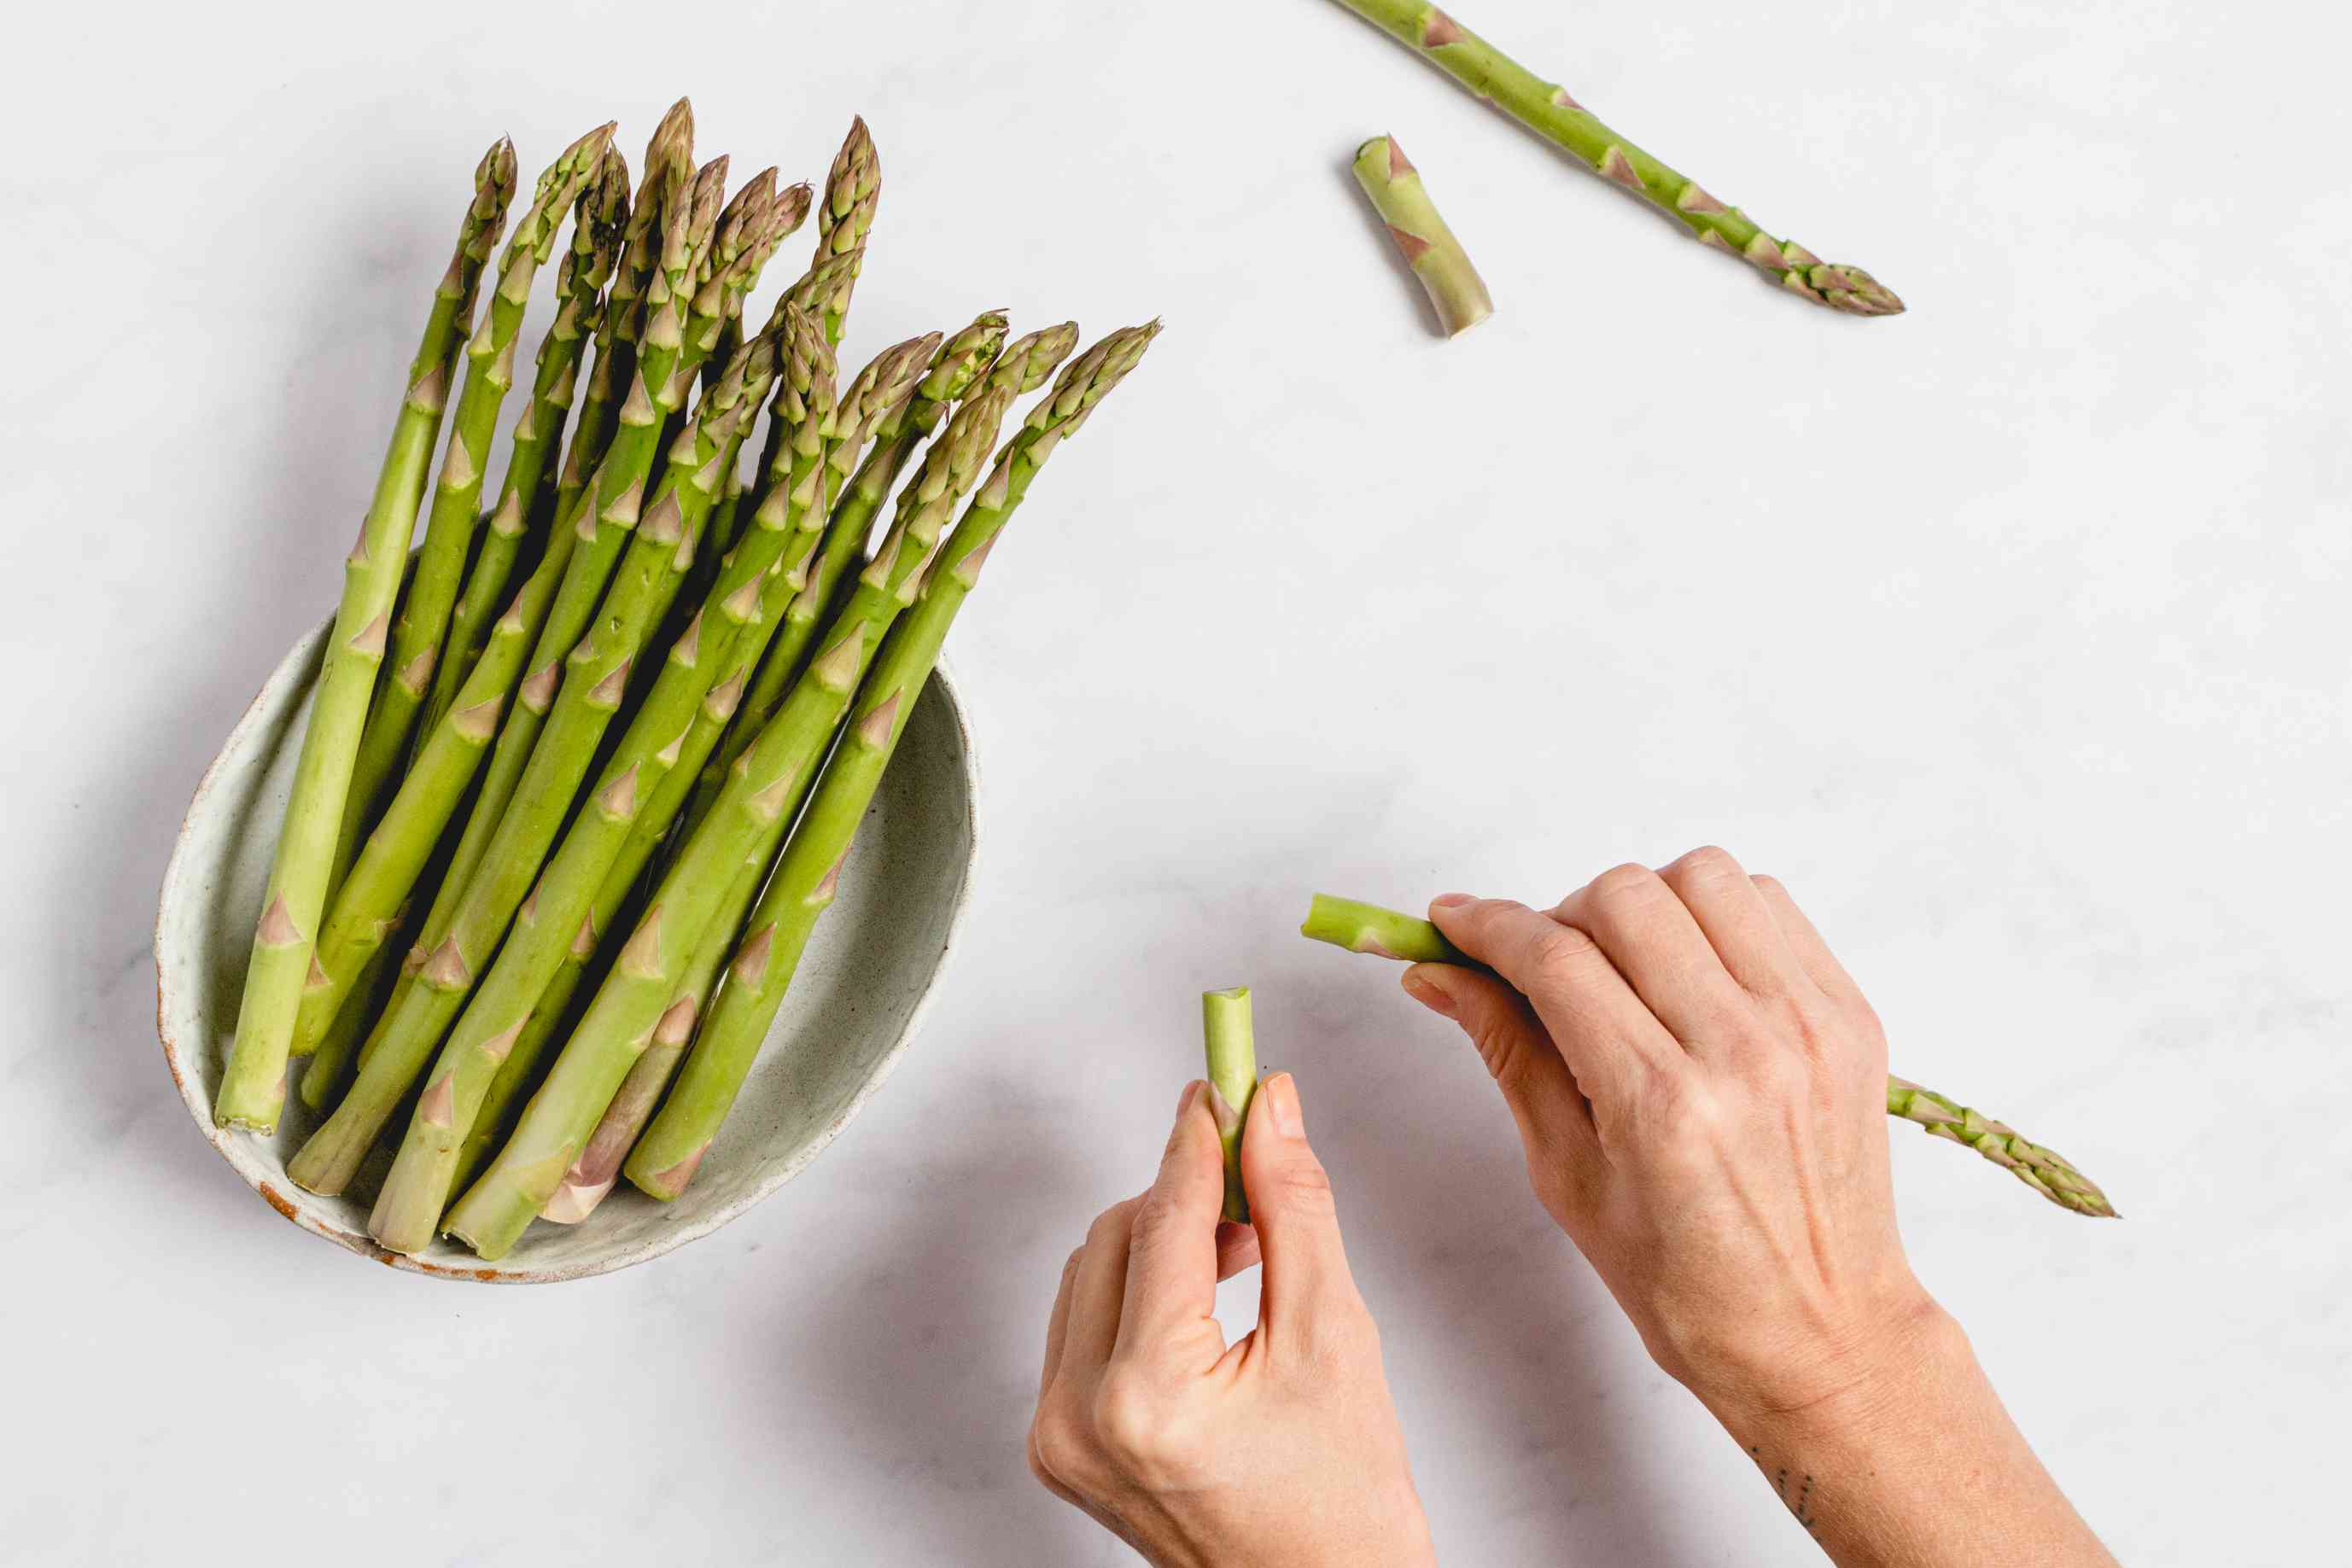 asparagus will break at the point between the tender tips and the tougher ends